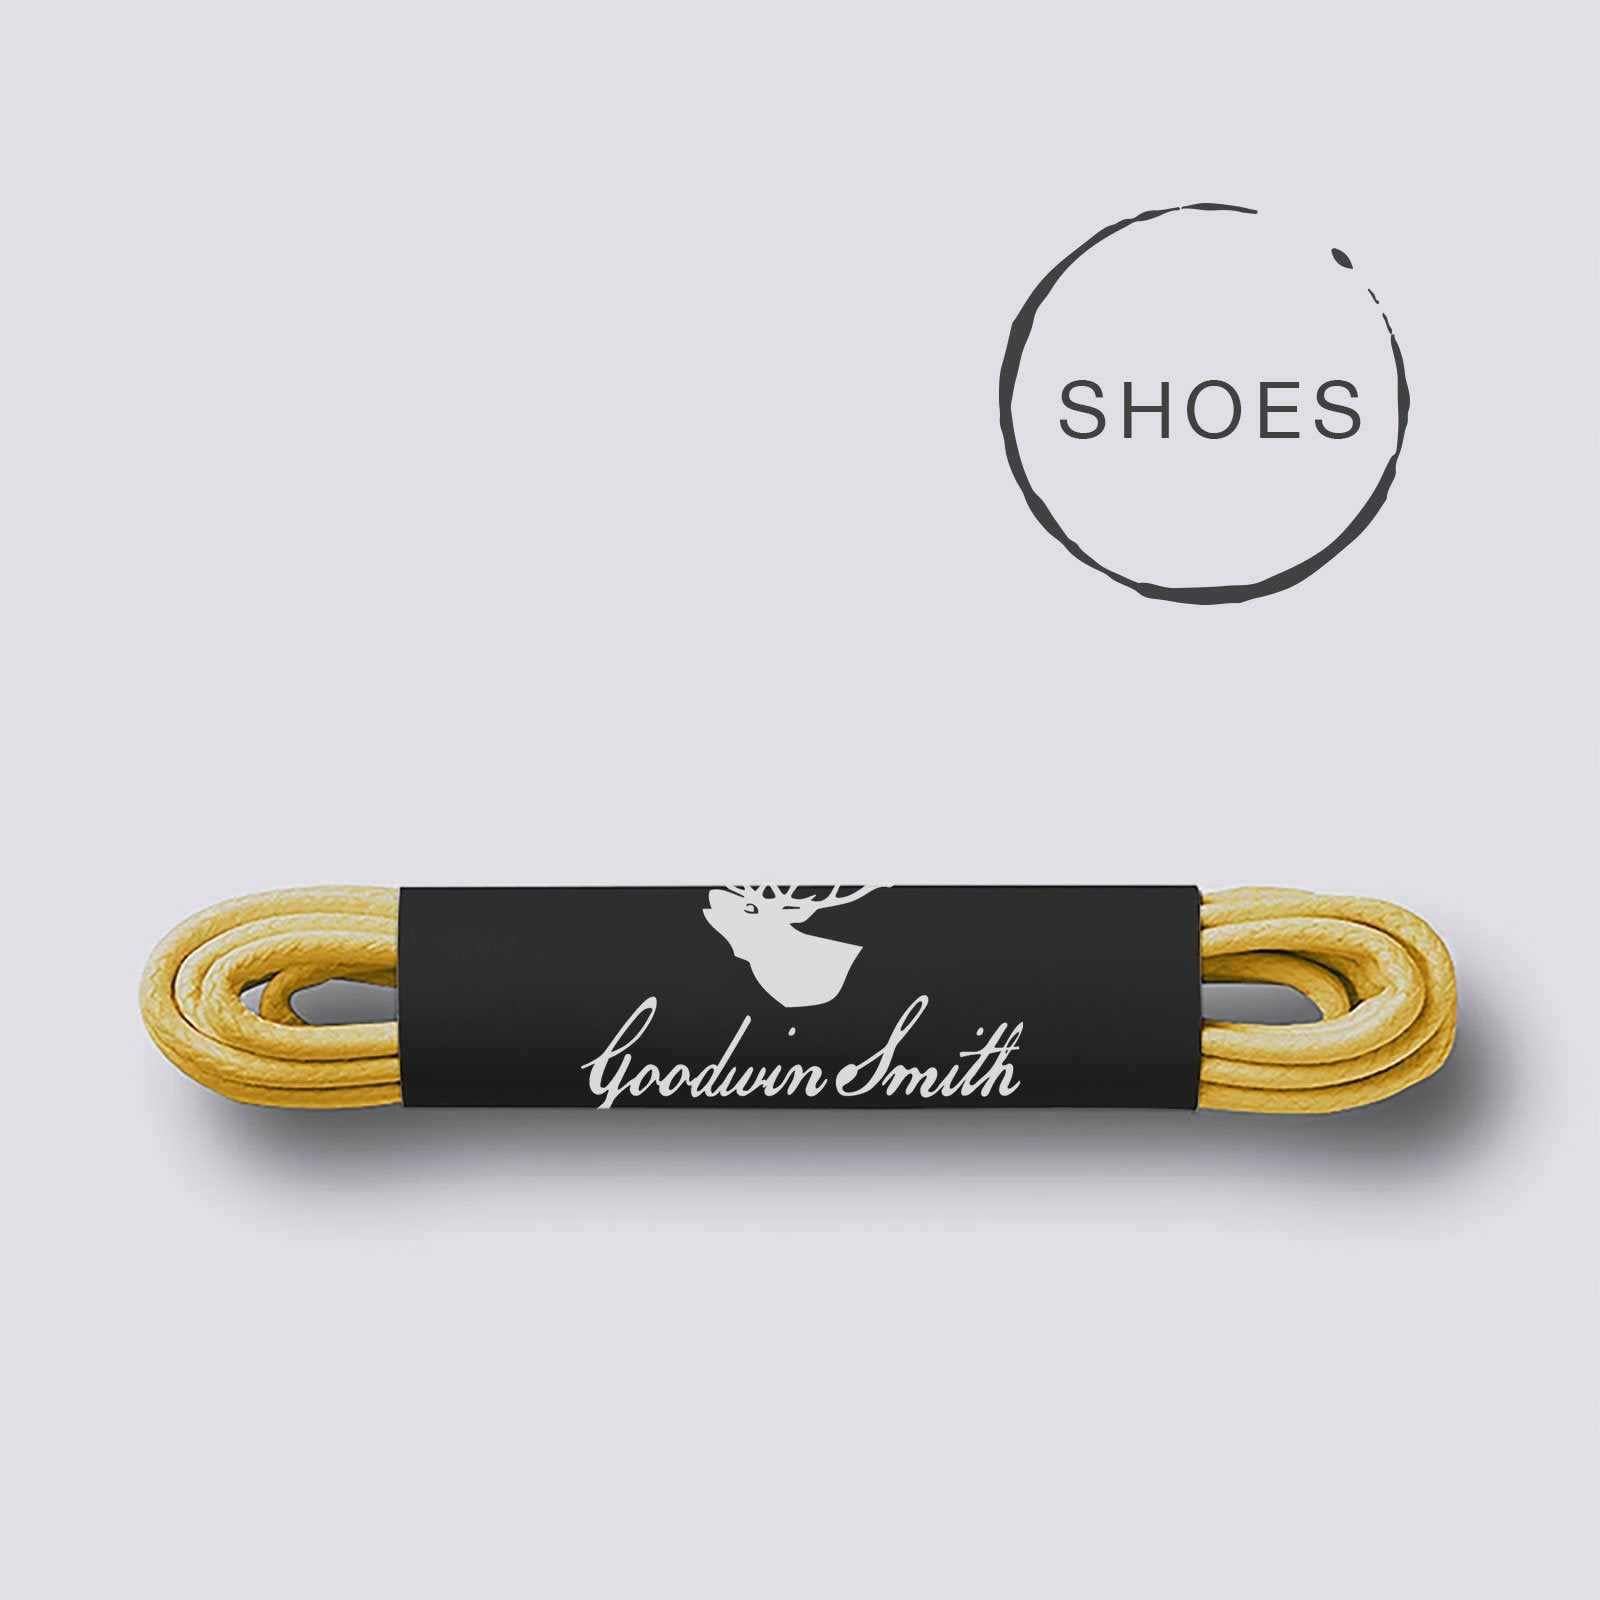 Goodwin Smith Laces Yellow (Shoe) / 75cm / Waxed Lace Yellow Shoe Laces